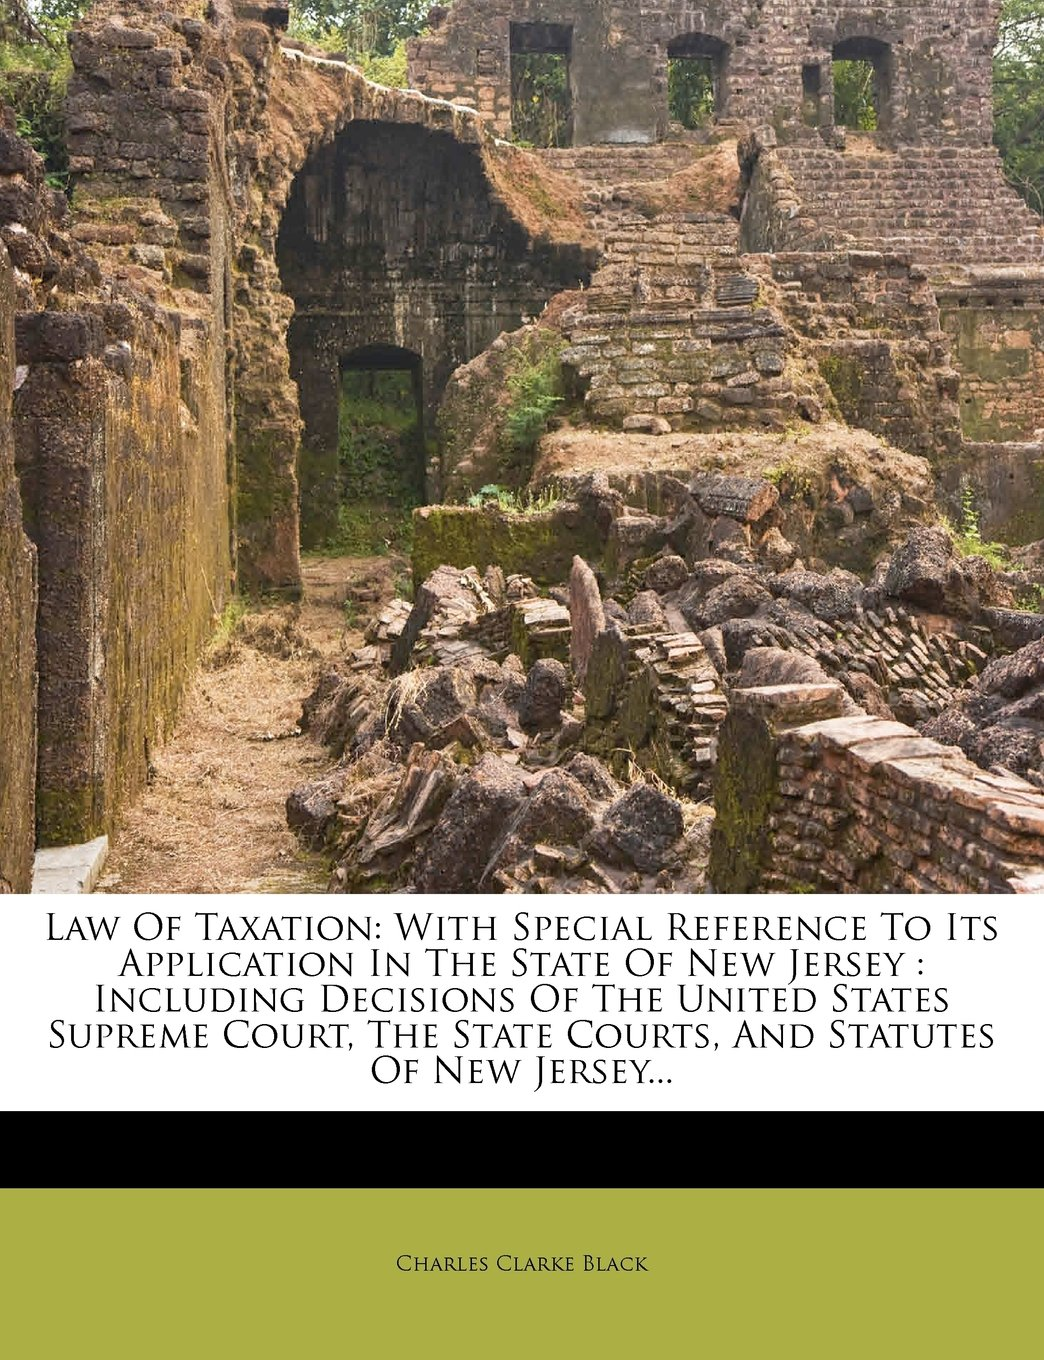 Read Online Law Of Taxation: With Special Reference To Its Application In The State Of New Jersey : Including Decisions Of The United States Supreme Court, The State Courts, And Statutes Of New Jersey... ebook